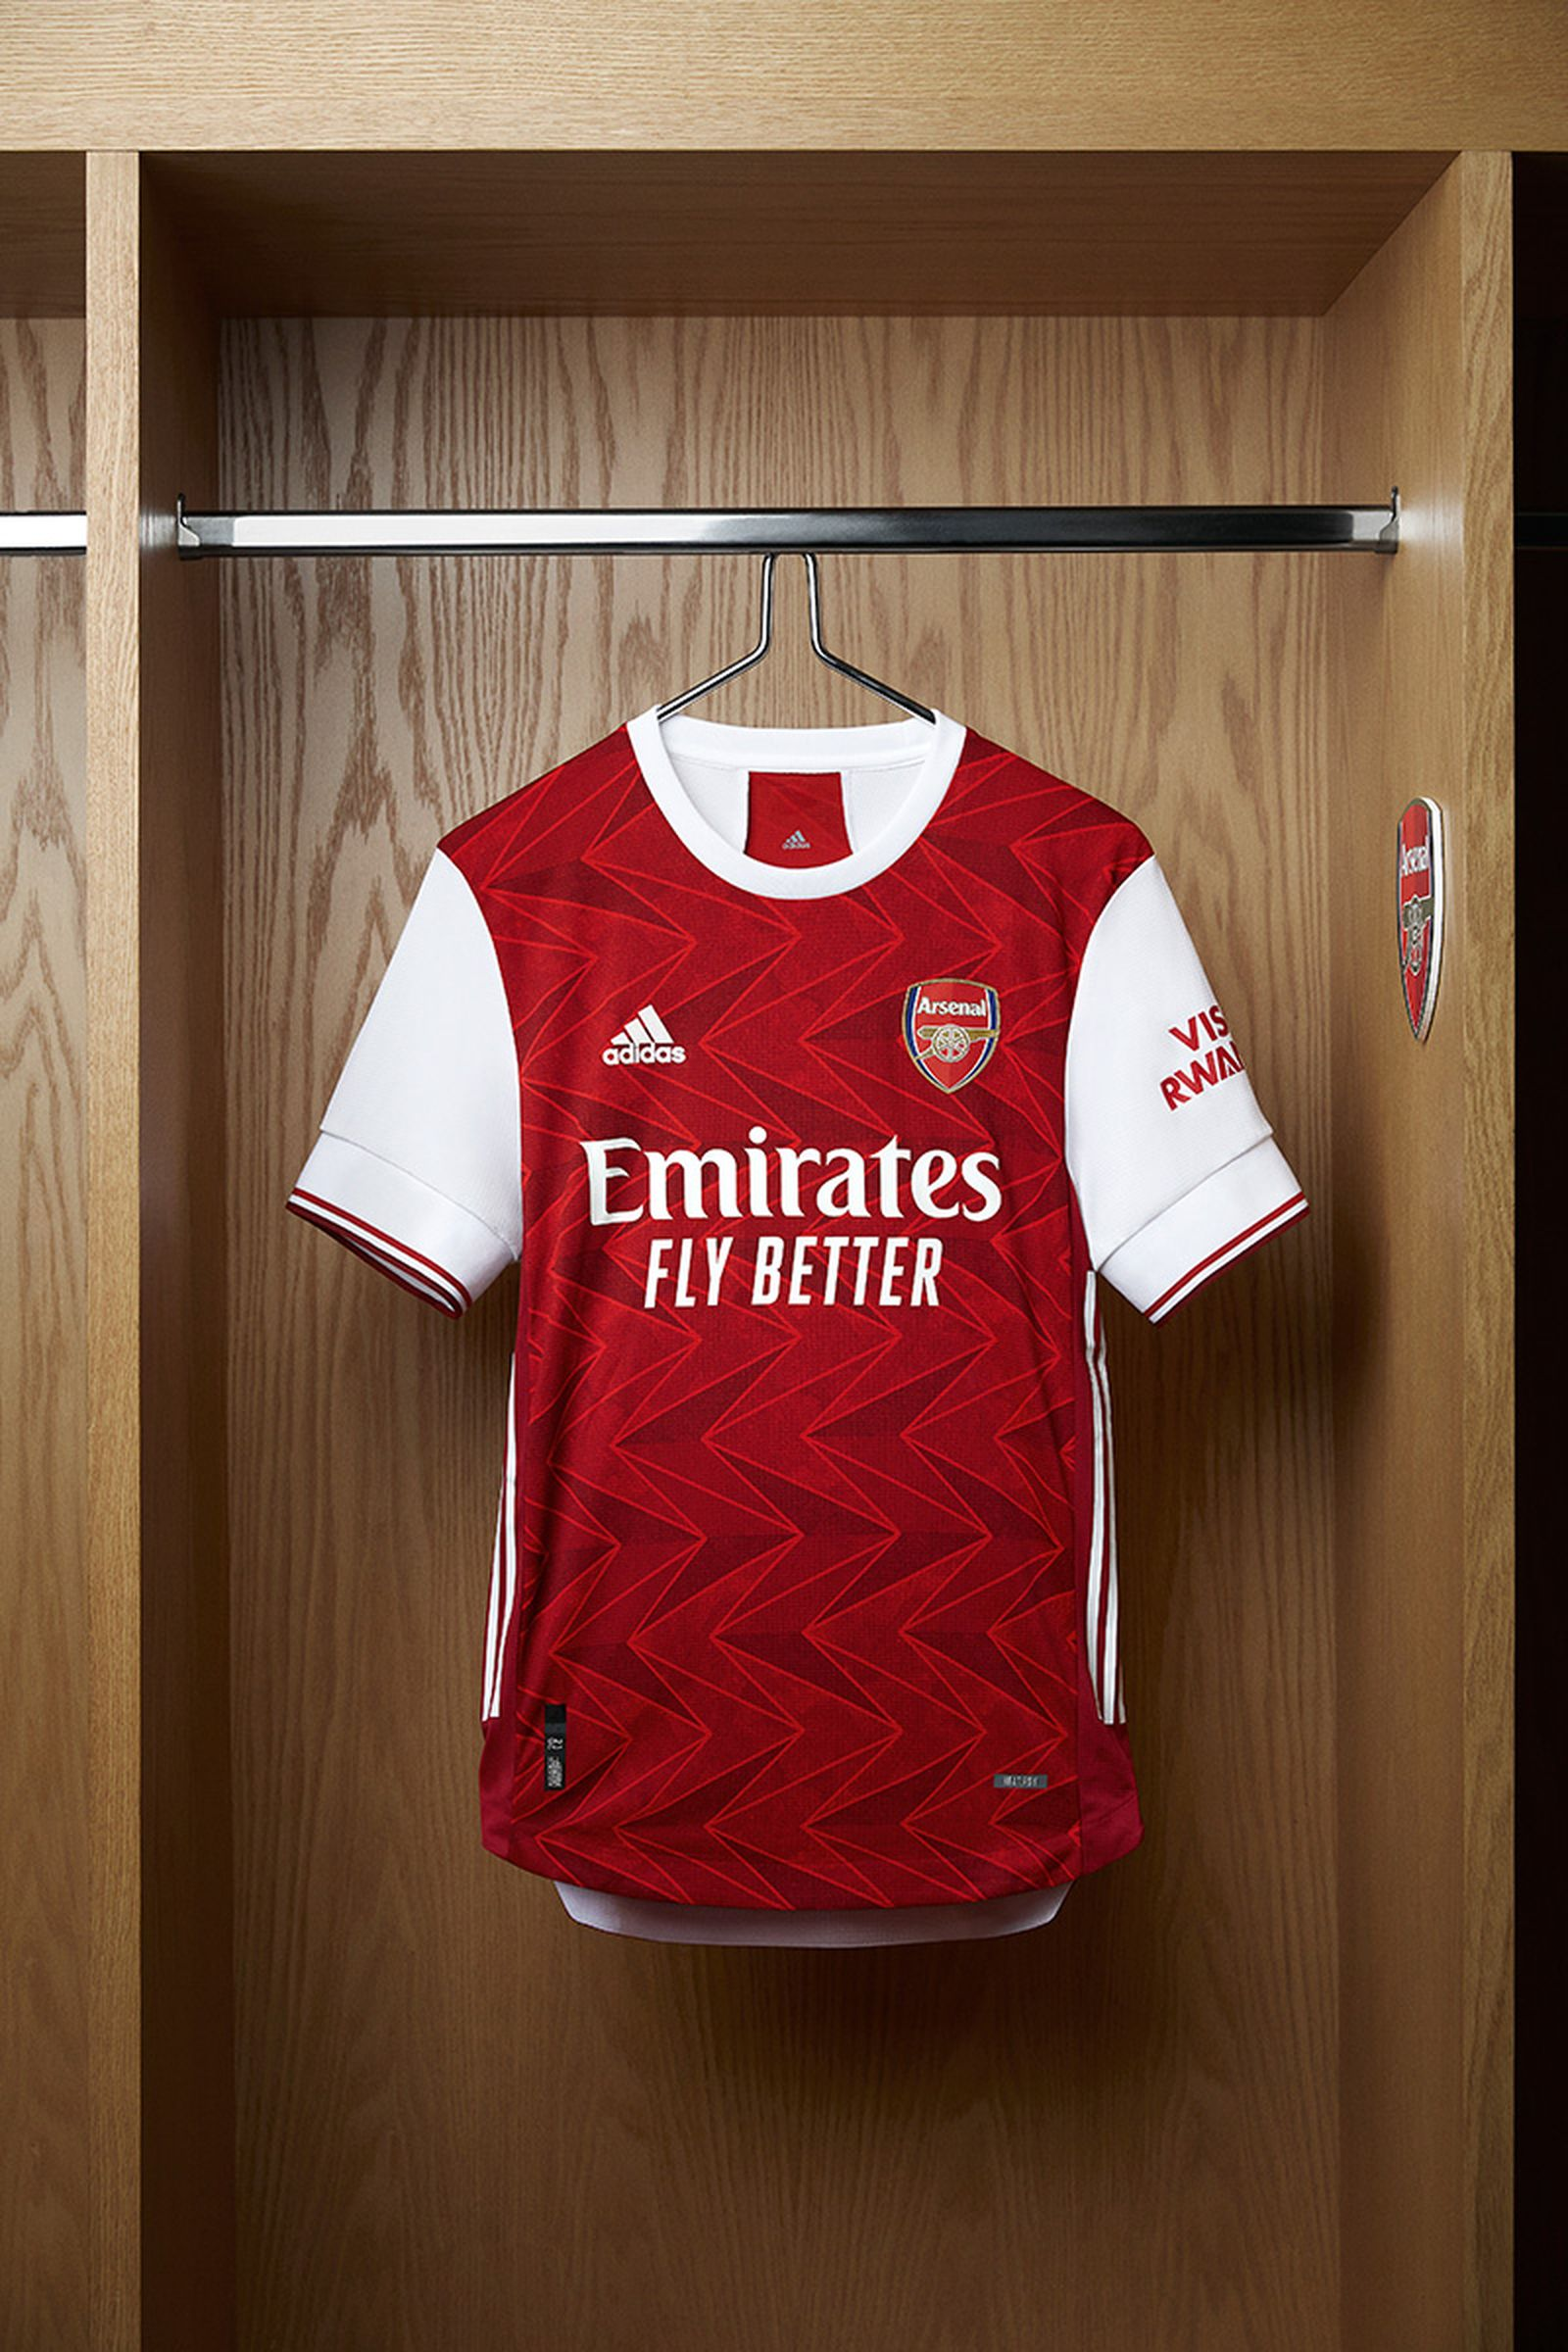 The Adidas Arsenal Home Kit 20 21 Is Super Wavy